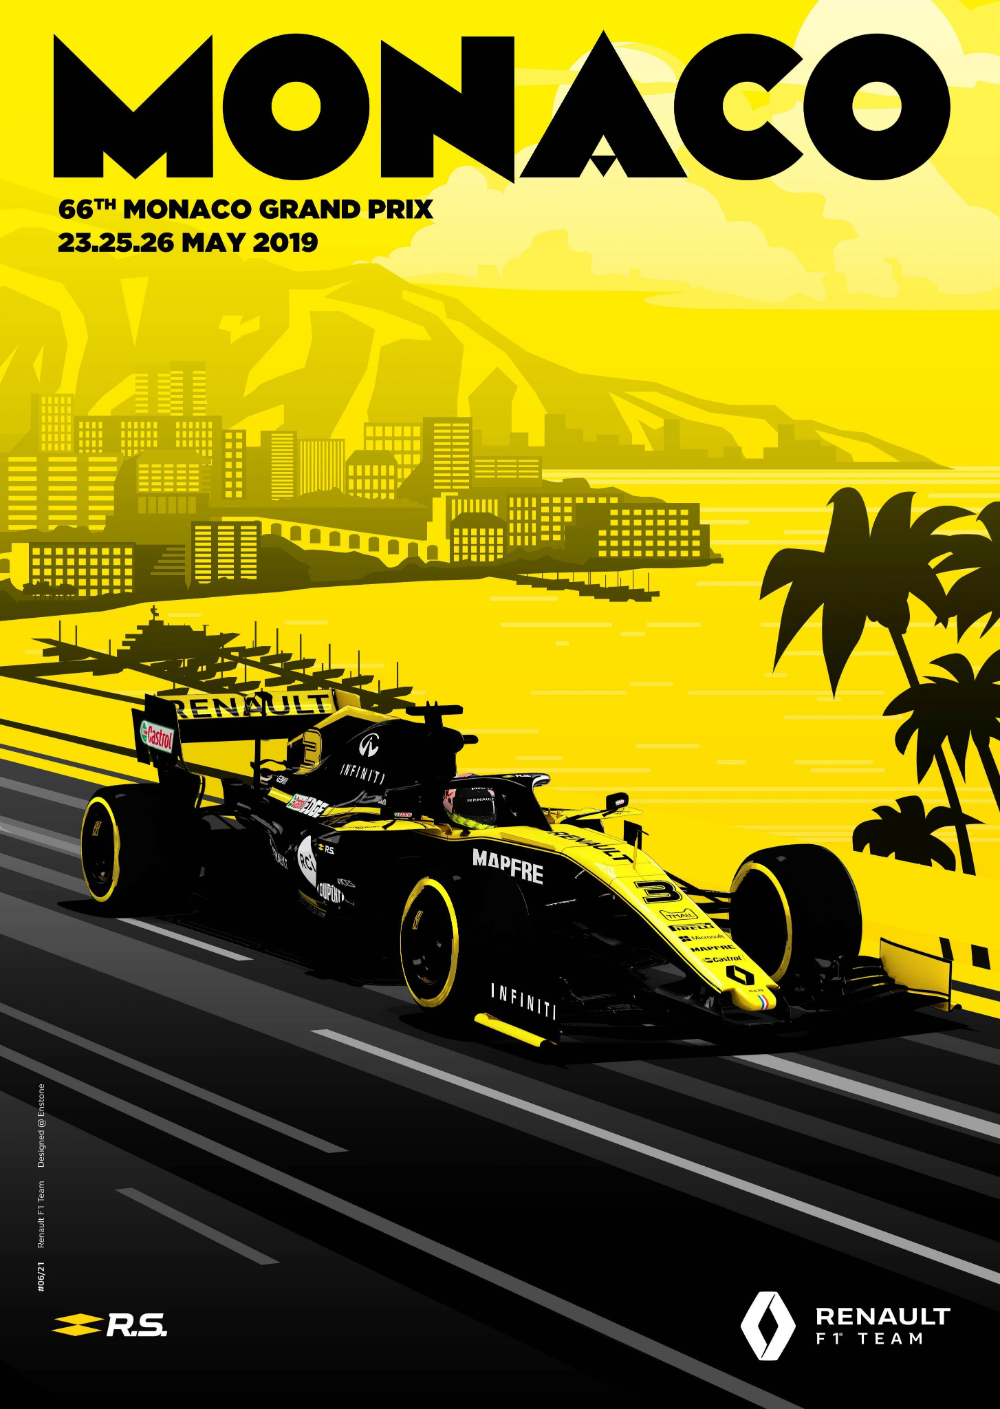 Renault S Poster For The Monaco Grand Prix Formula1 In 2020 Monaco Grand Prix Grand Prix Posters Monaco Grand Prix Posters